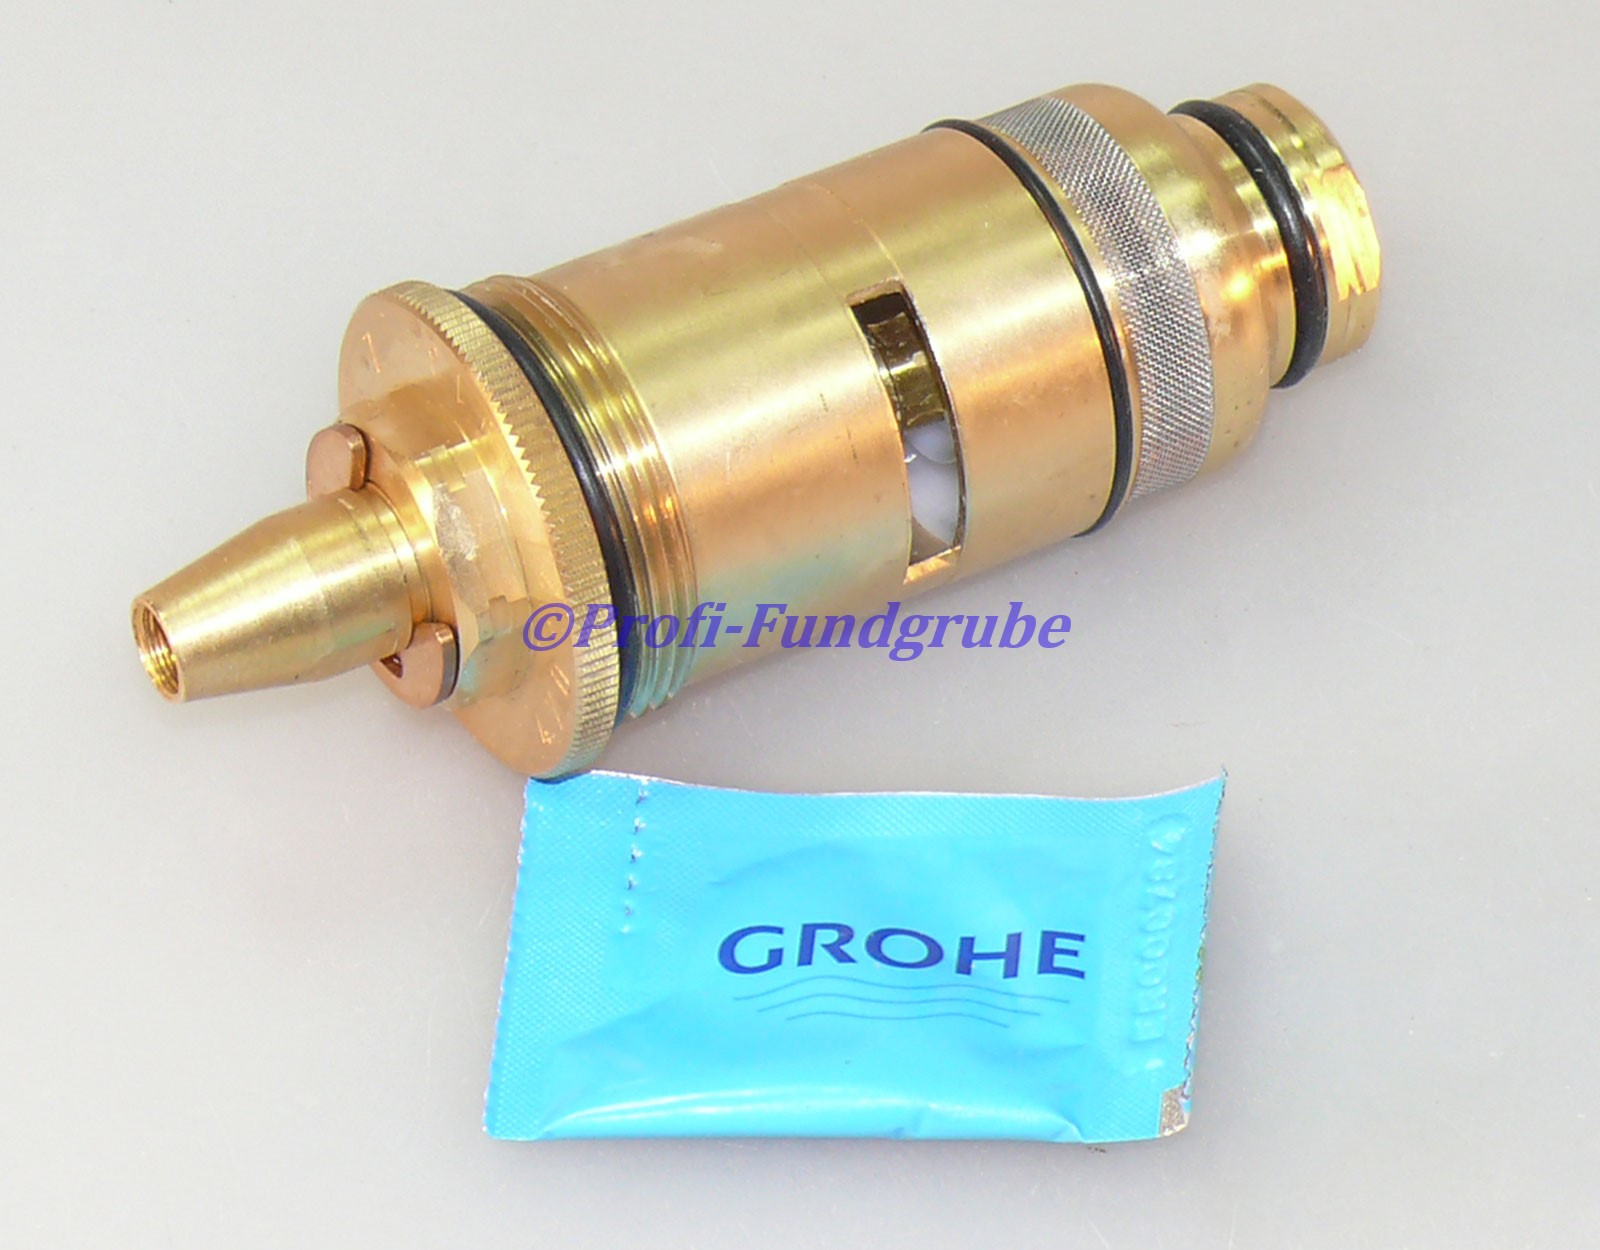 grohe thermoelement grohmix 47012 47012000 ab 1979 ebay. Black Bedroom Furniture Sets. Home Design Ideas